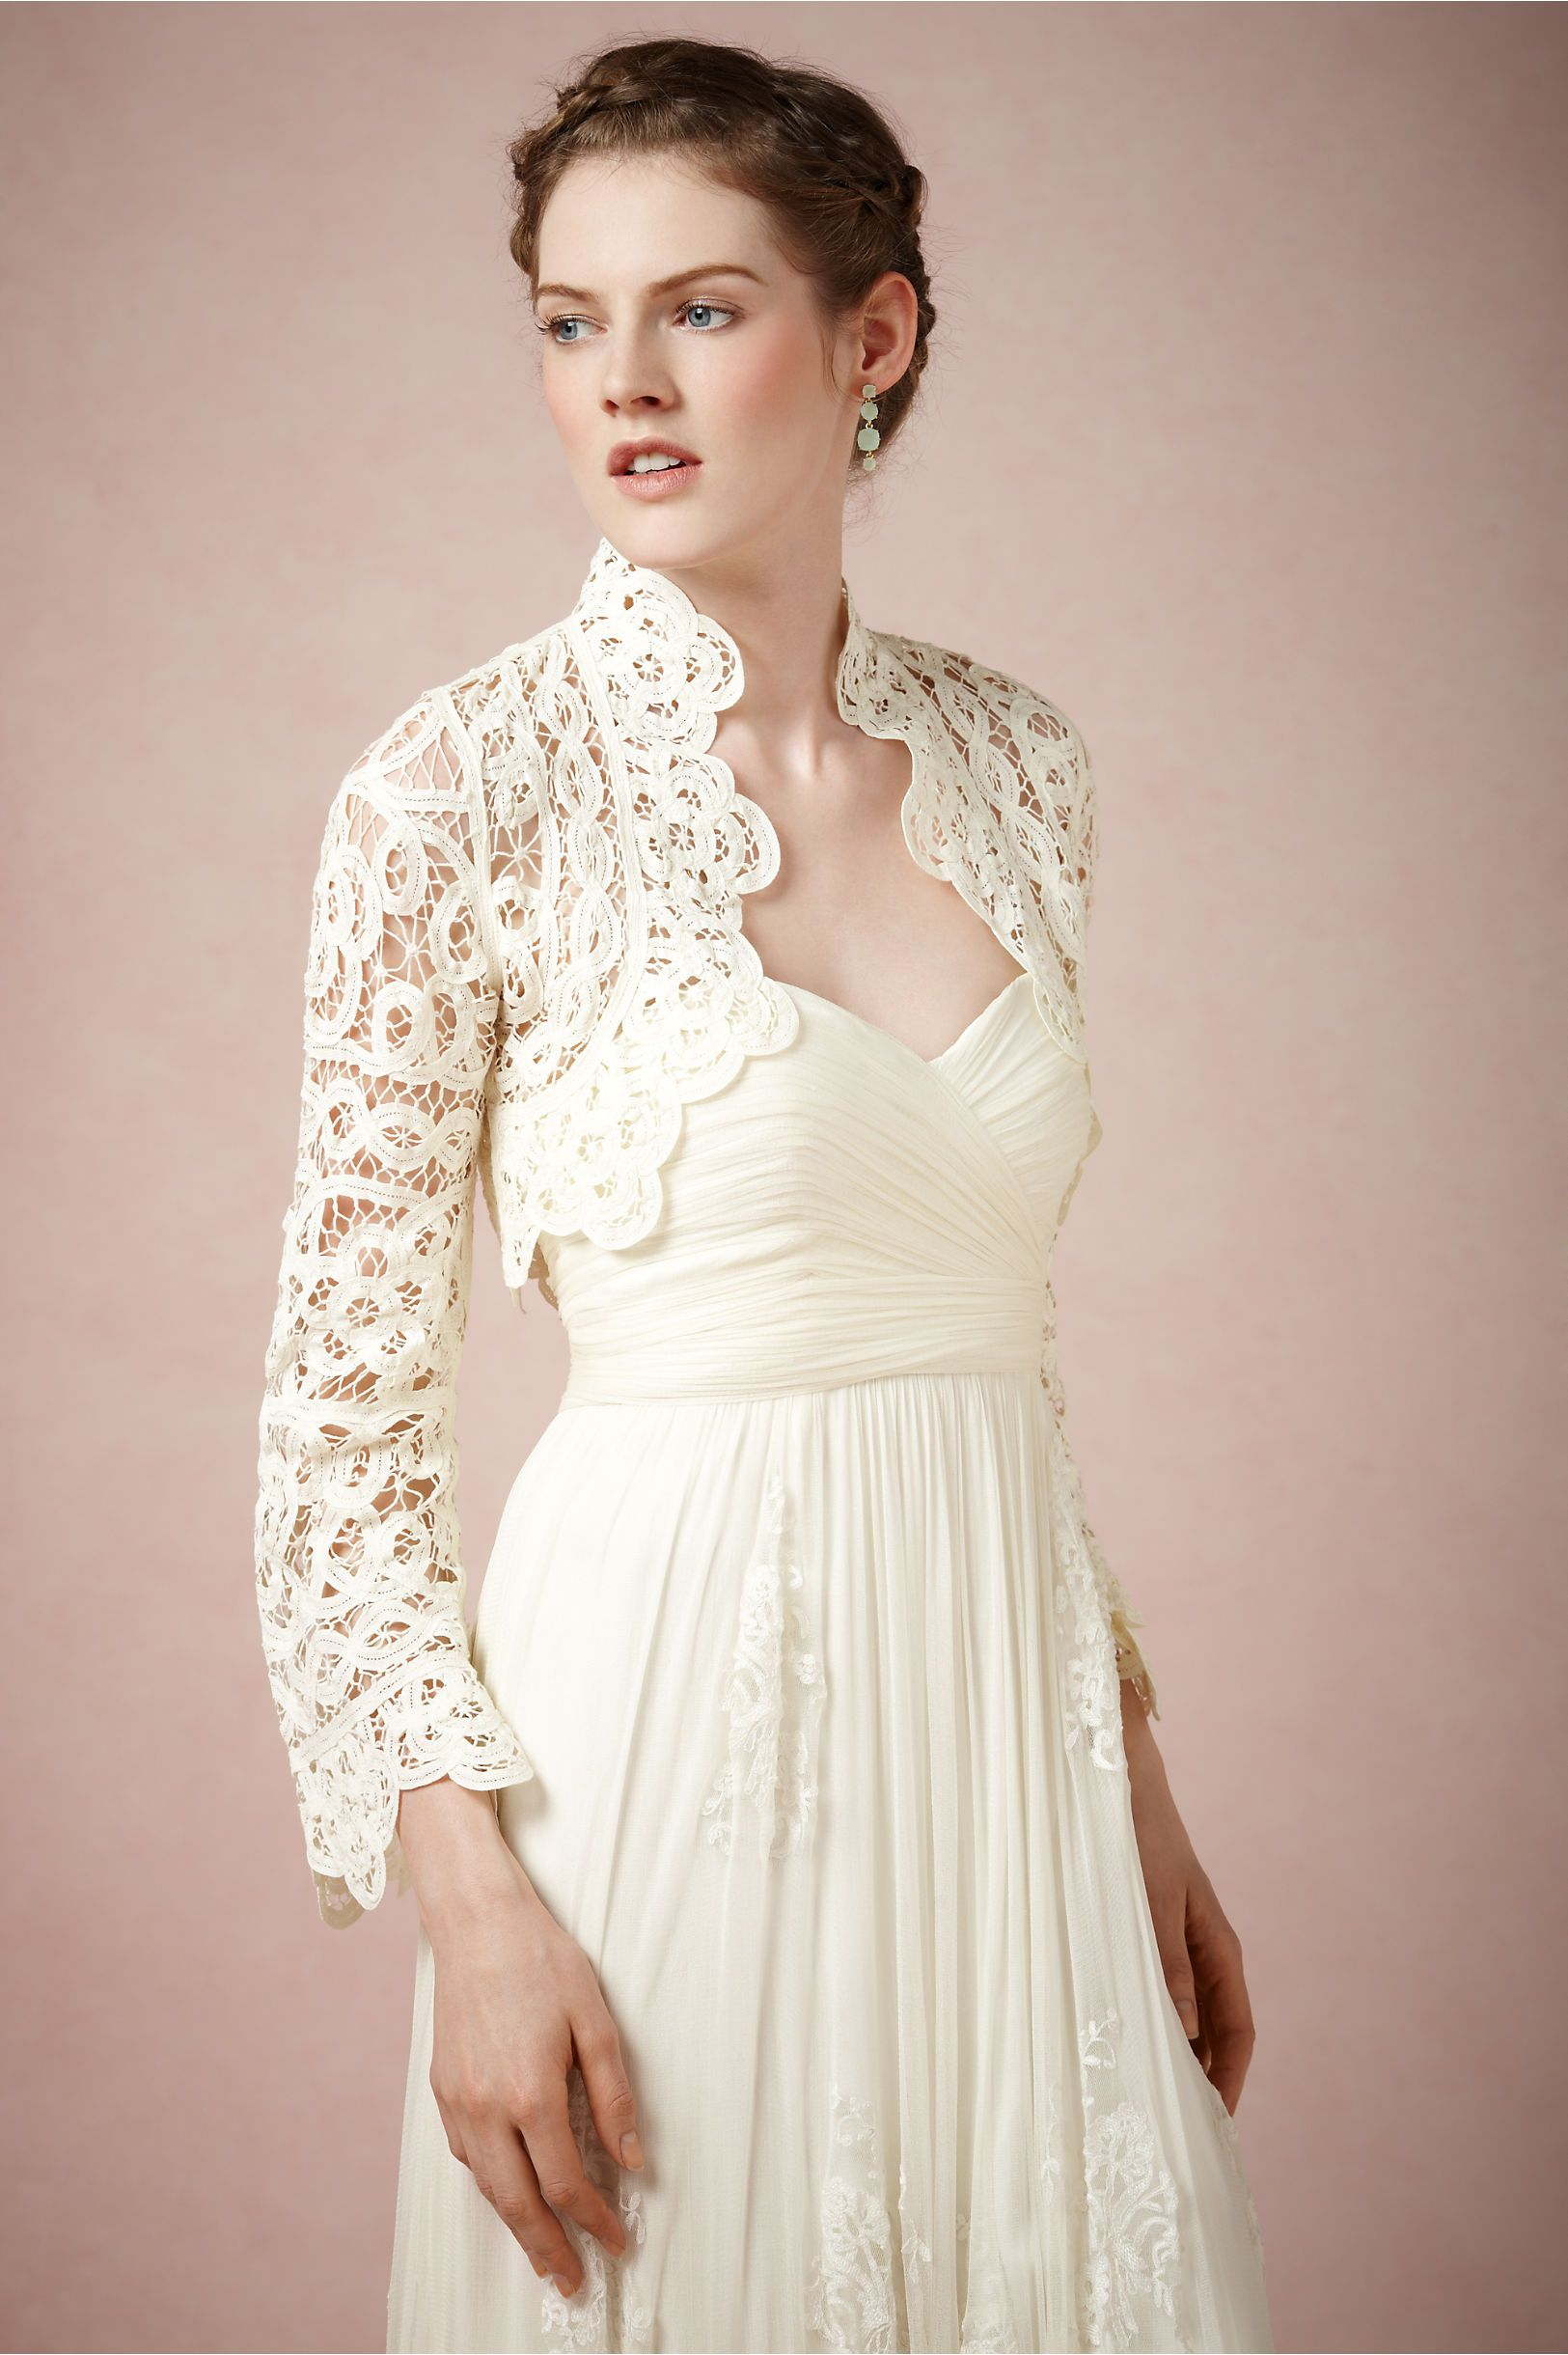 Battenberg Bolero in Shoes & Accessories Cover Ups at BHLDN you ...